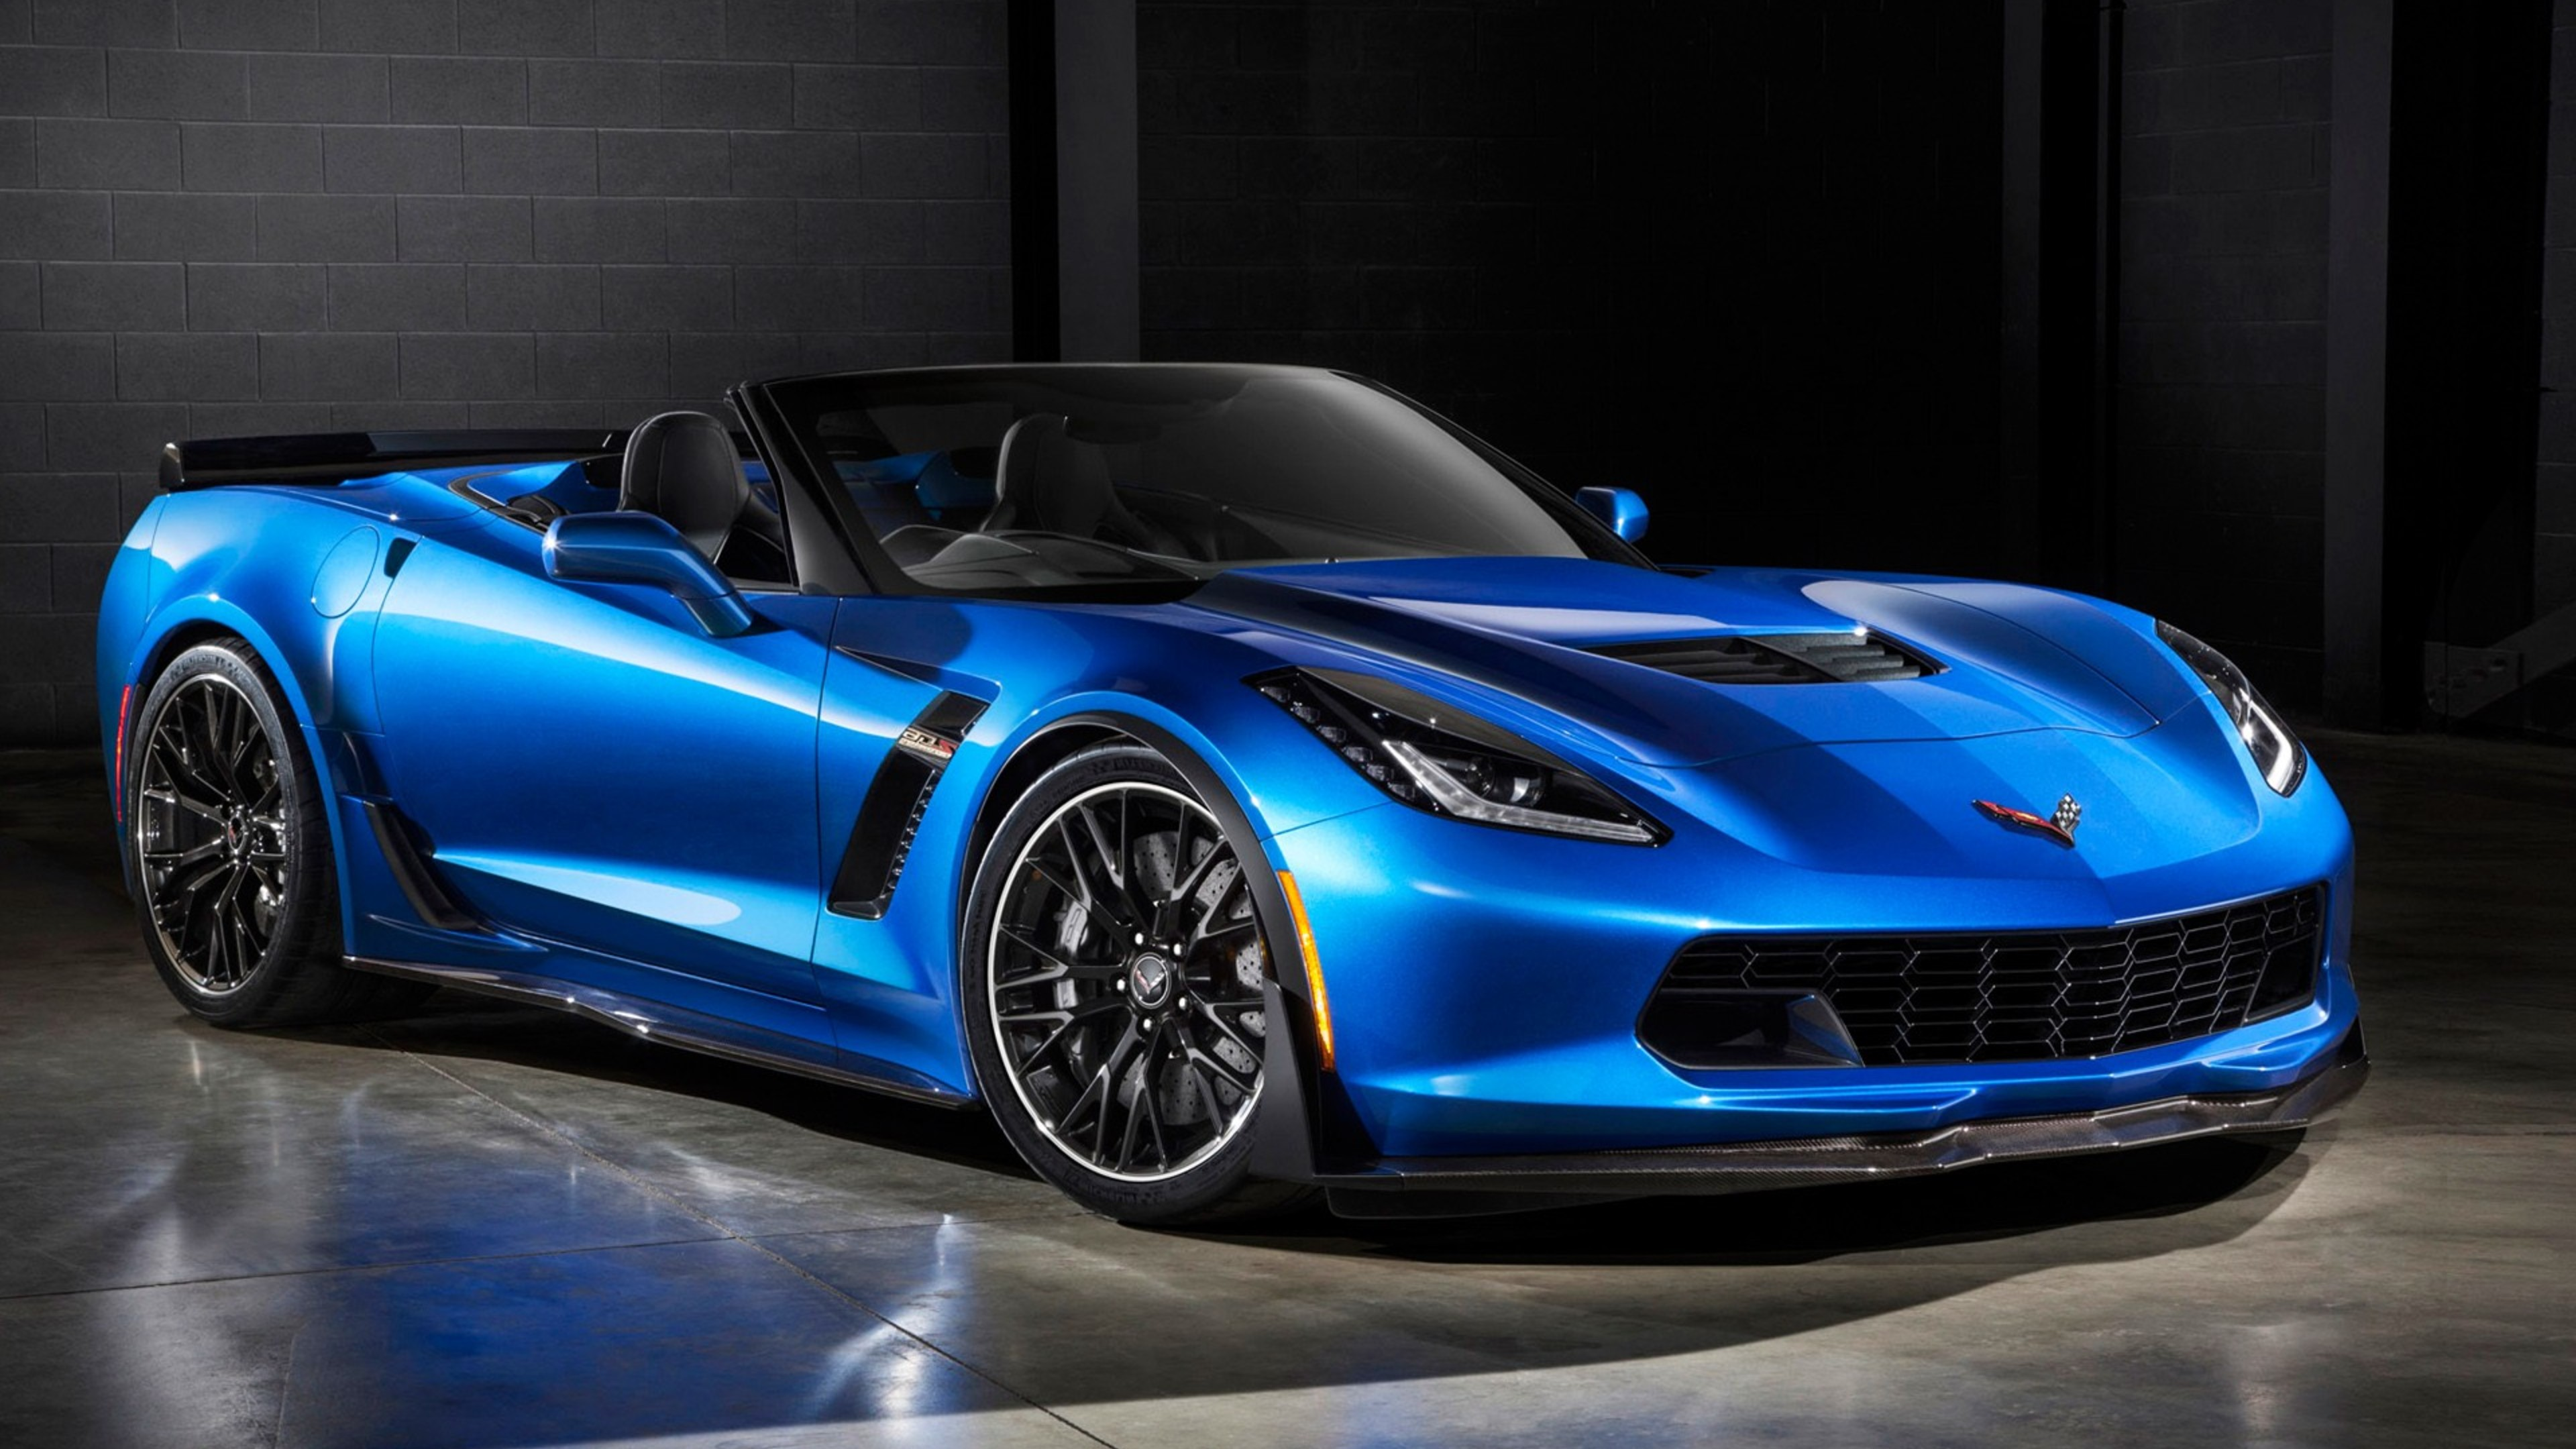 Corvette Convertible 2016 Hd Cars 4k Wallpapers Images